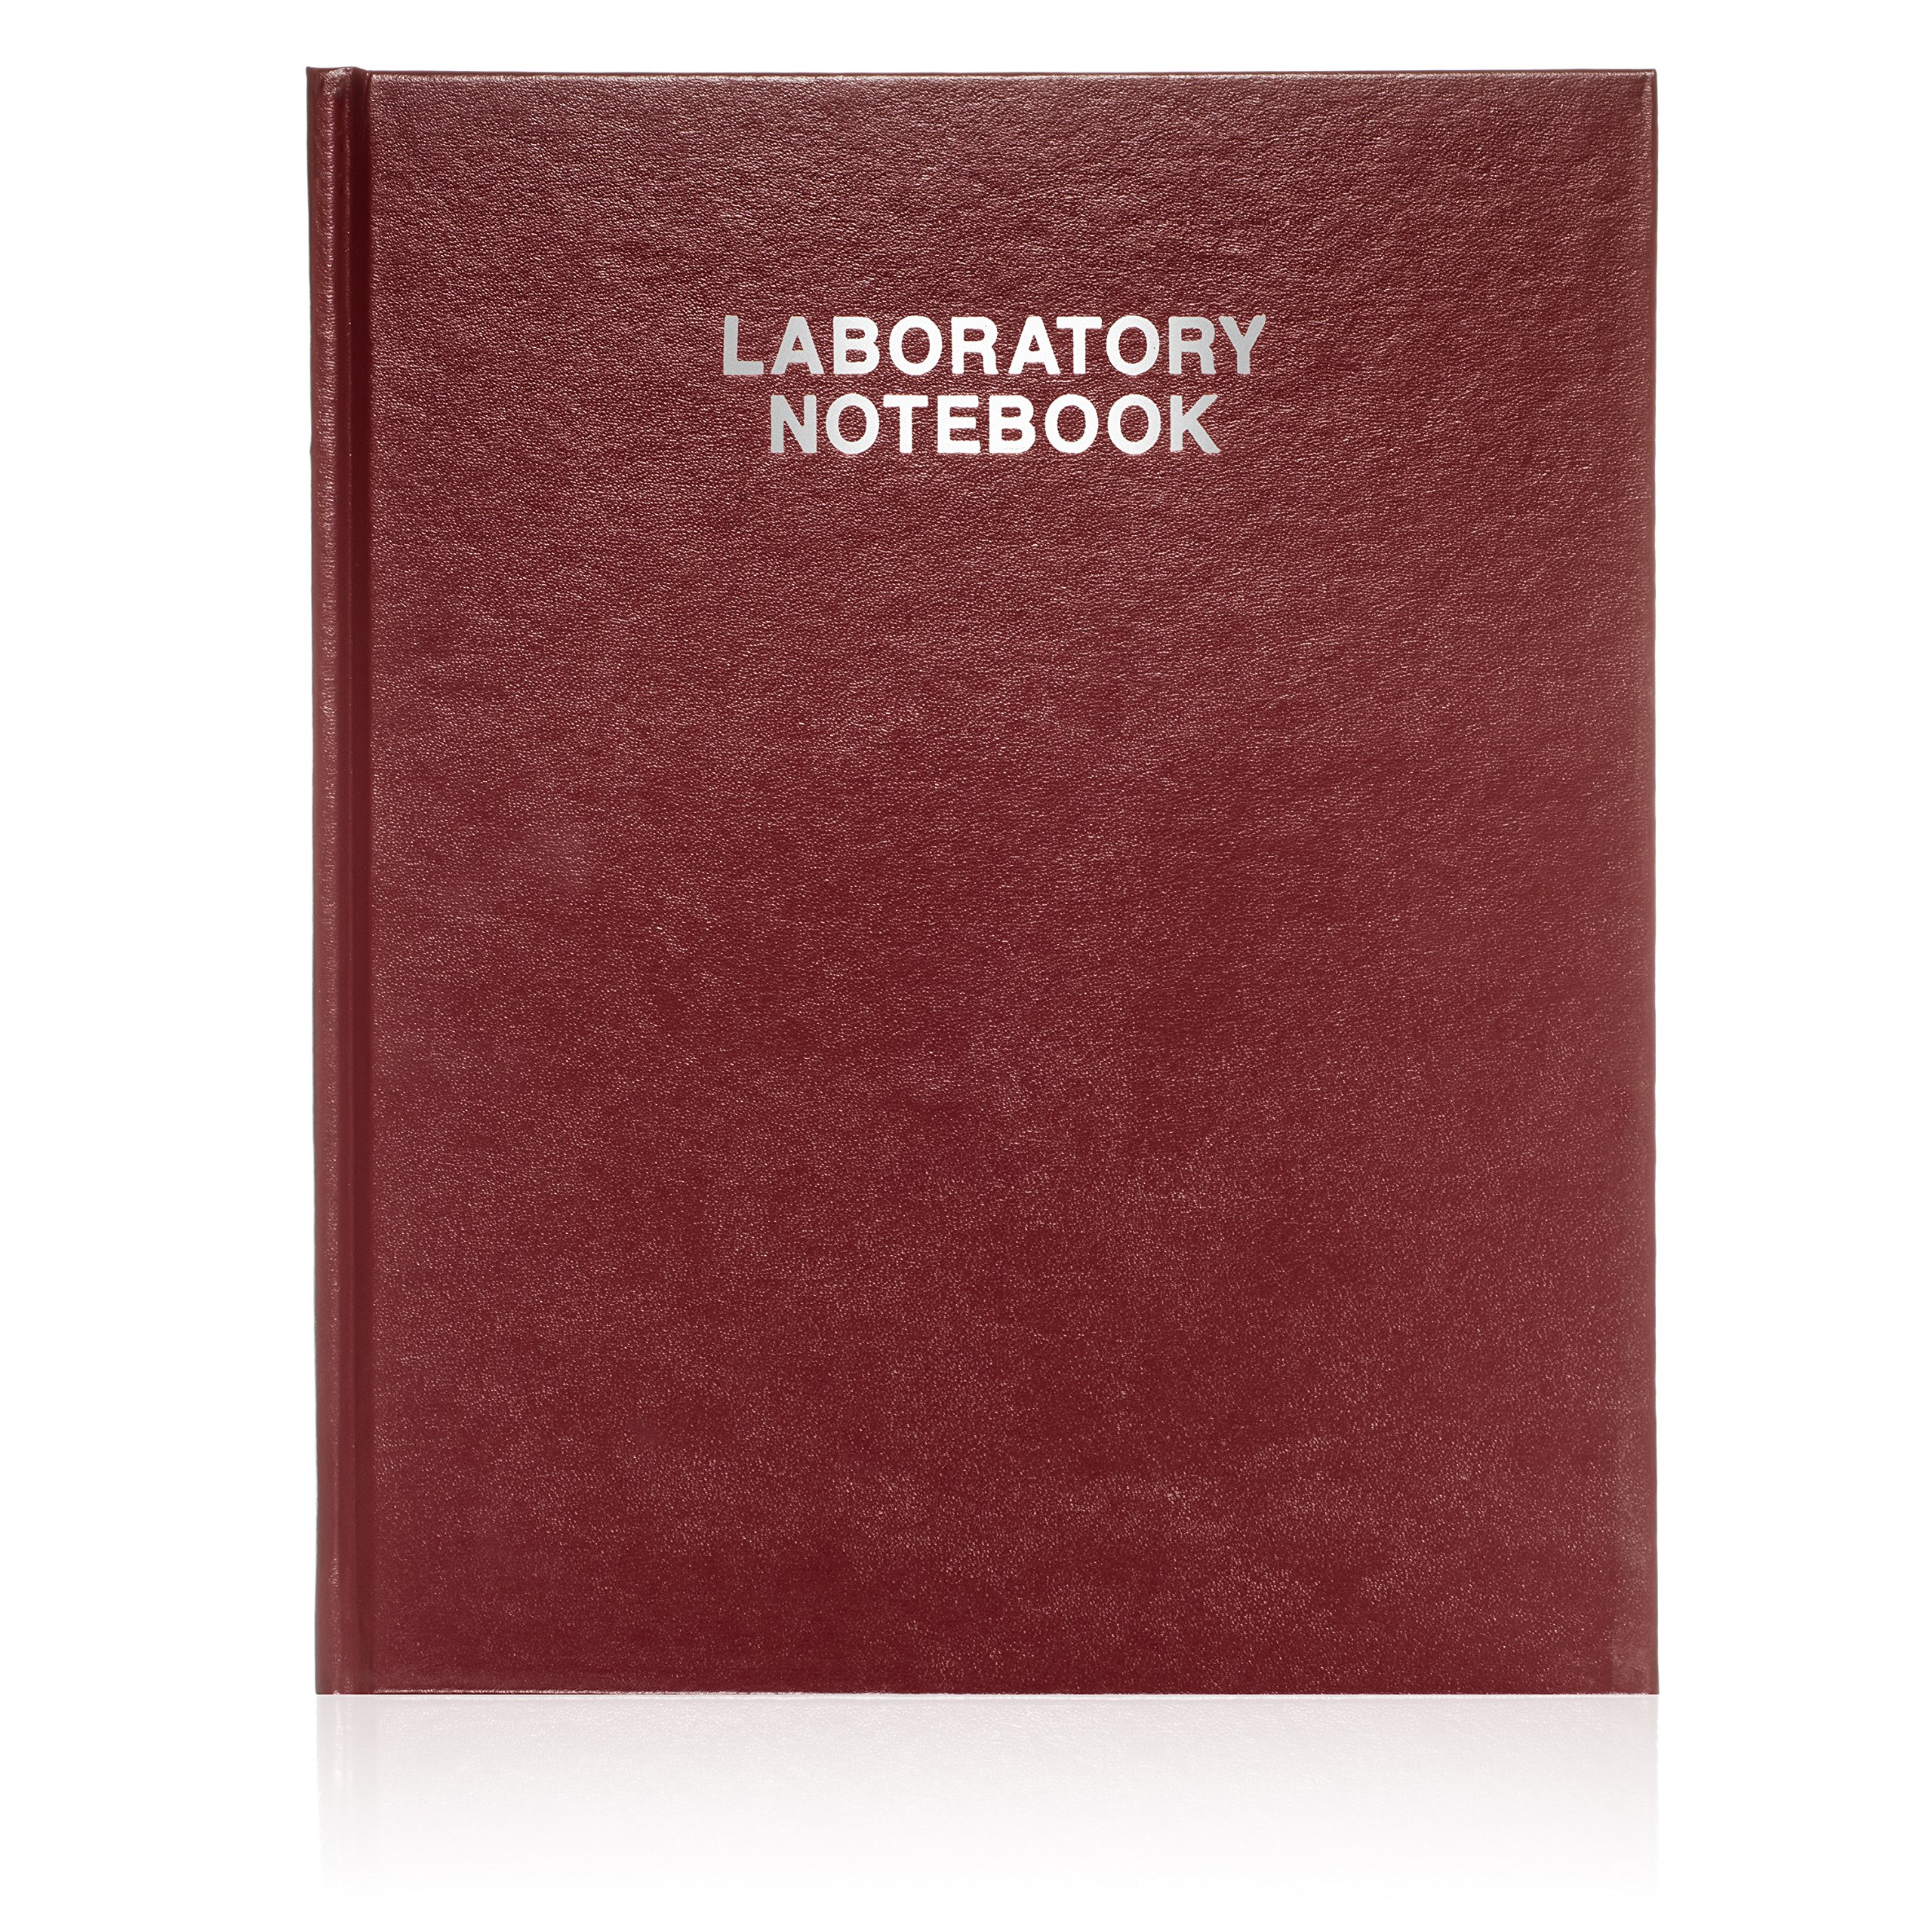 Scientific Notebook Company Burgundy cover Oversized Hardcover, Research Laboratory Notebook, 160 Pages, Smyth Sewn, 9 5/8'' x 12 1/2'', 4x4 Grid by Scientific Notebook Company